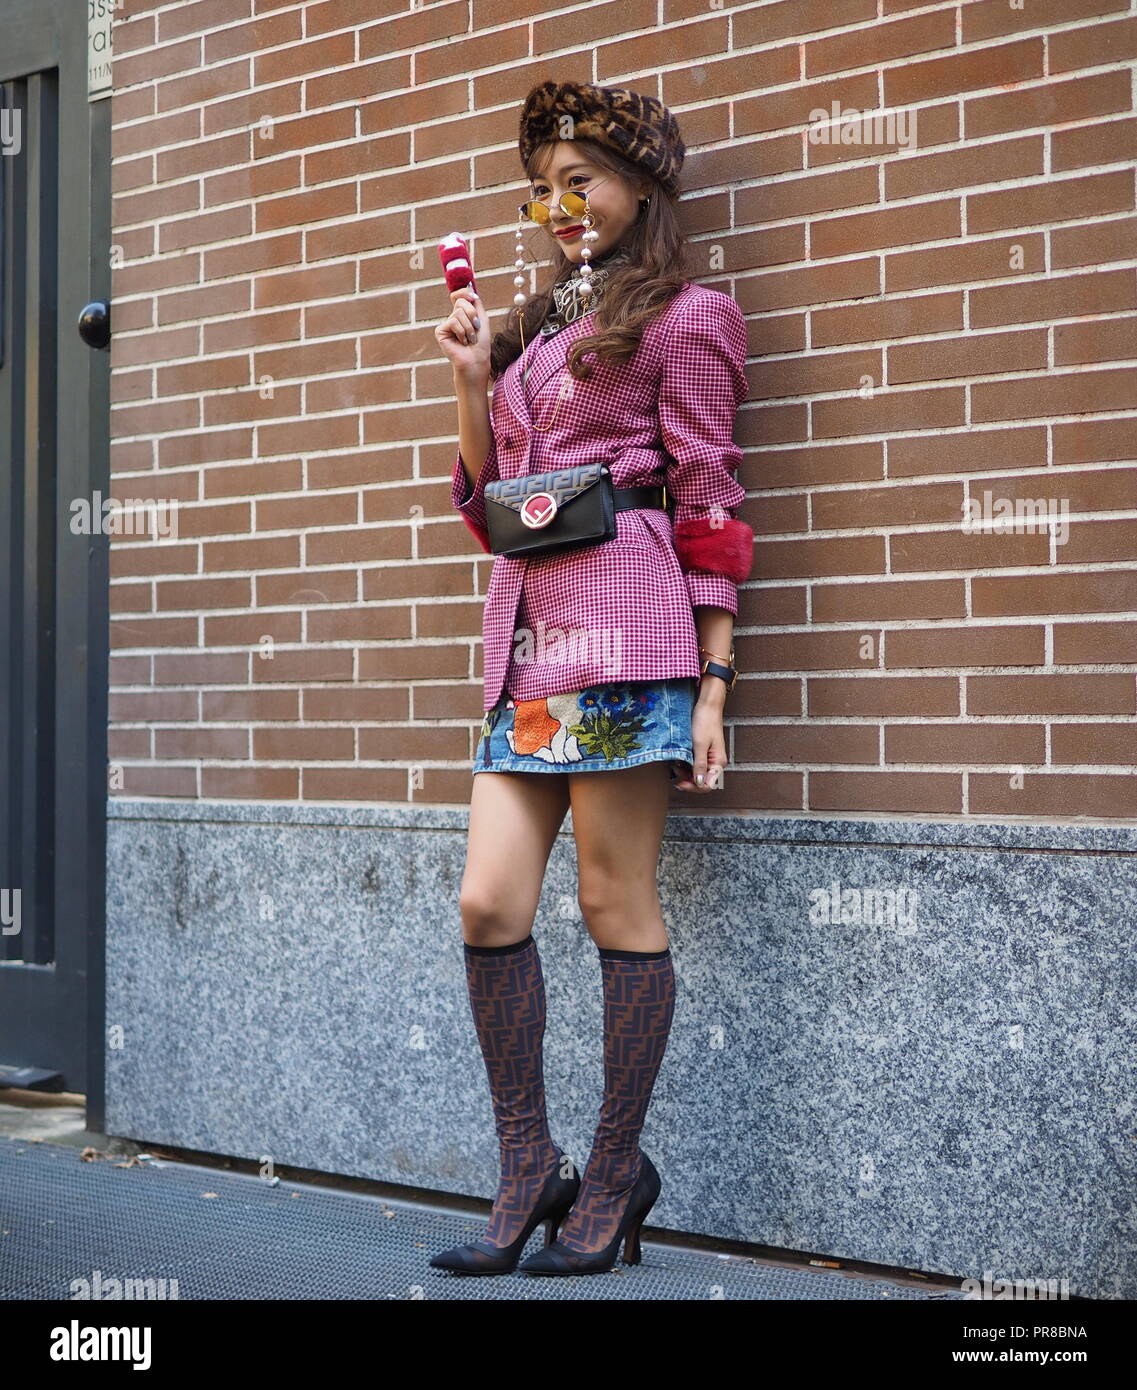 MILAN, Italy, 20 septembre 2018: Fashion blogger posing for photographers in street style before FENDI fashion show during Milan fashion week - Stock Image